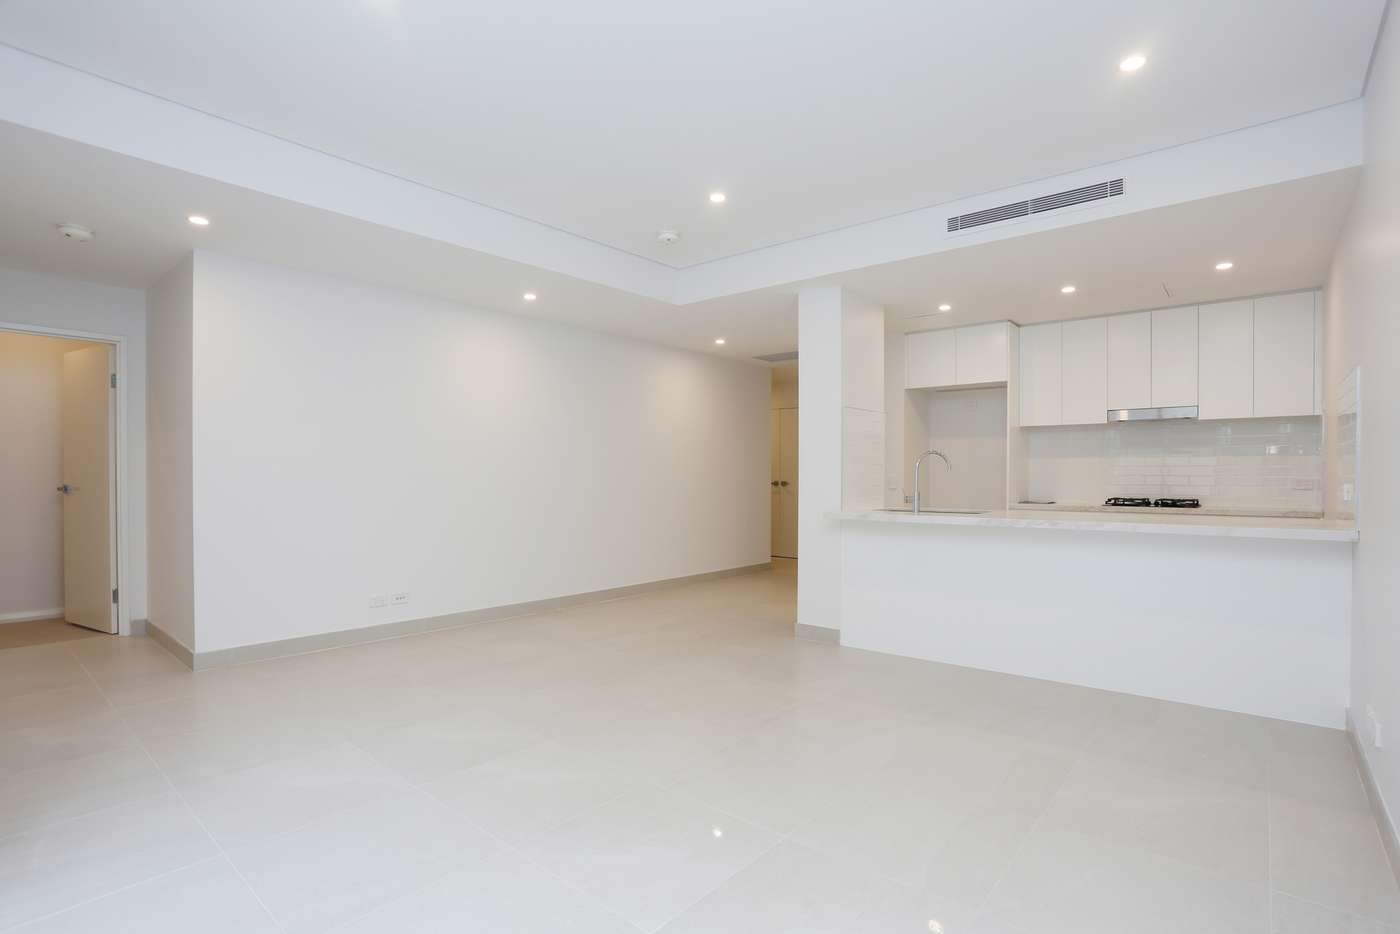 Main view of Homely apartment listing, 24-26 Robilliard Street, Mays Hill NSW 2145